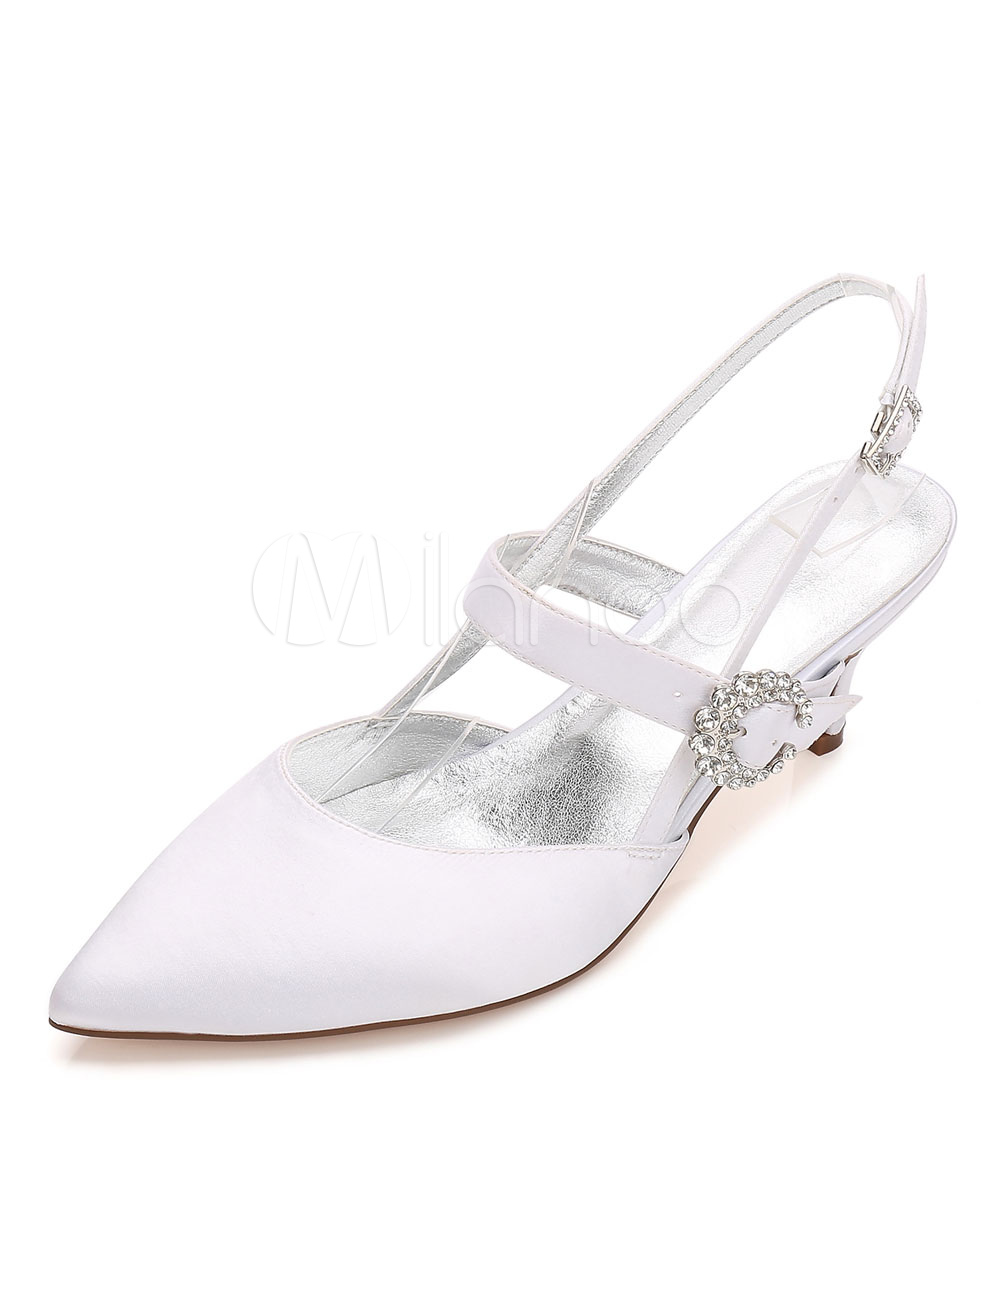 b5e391f3ba6 ... White Wedding Shoes Satin Pointed Toe Women s Rhinestones Slingbacks Kitten  Heel Pumps-No.10. 12. 40%OFF. Color White